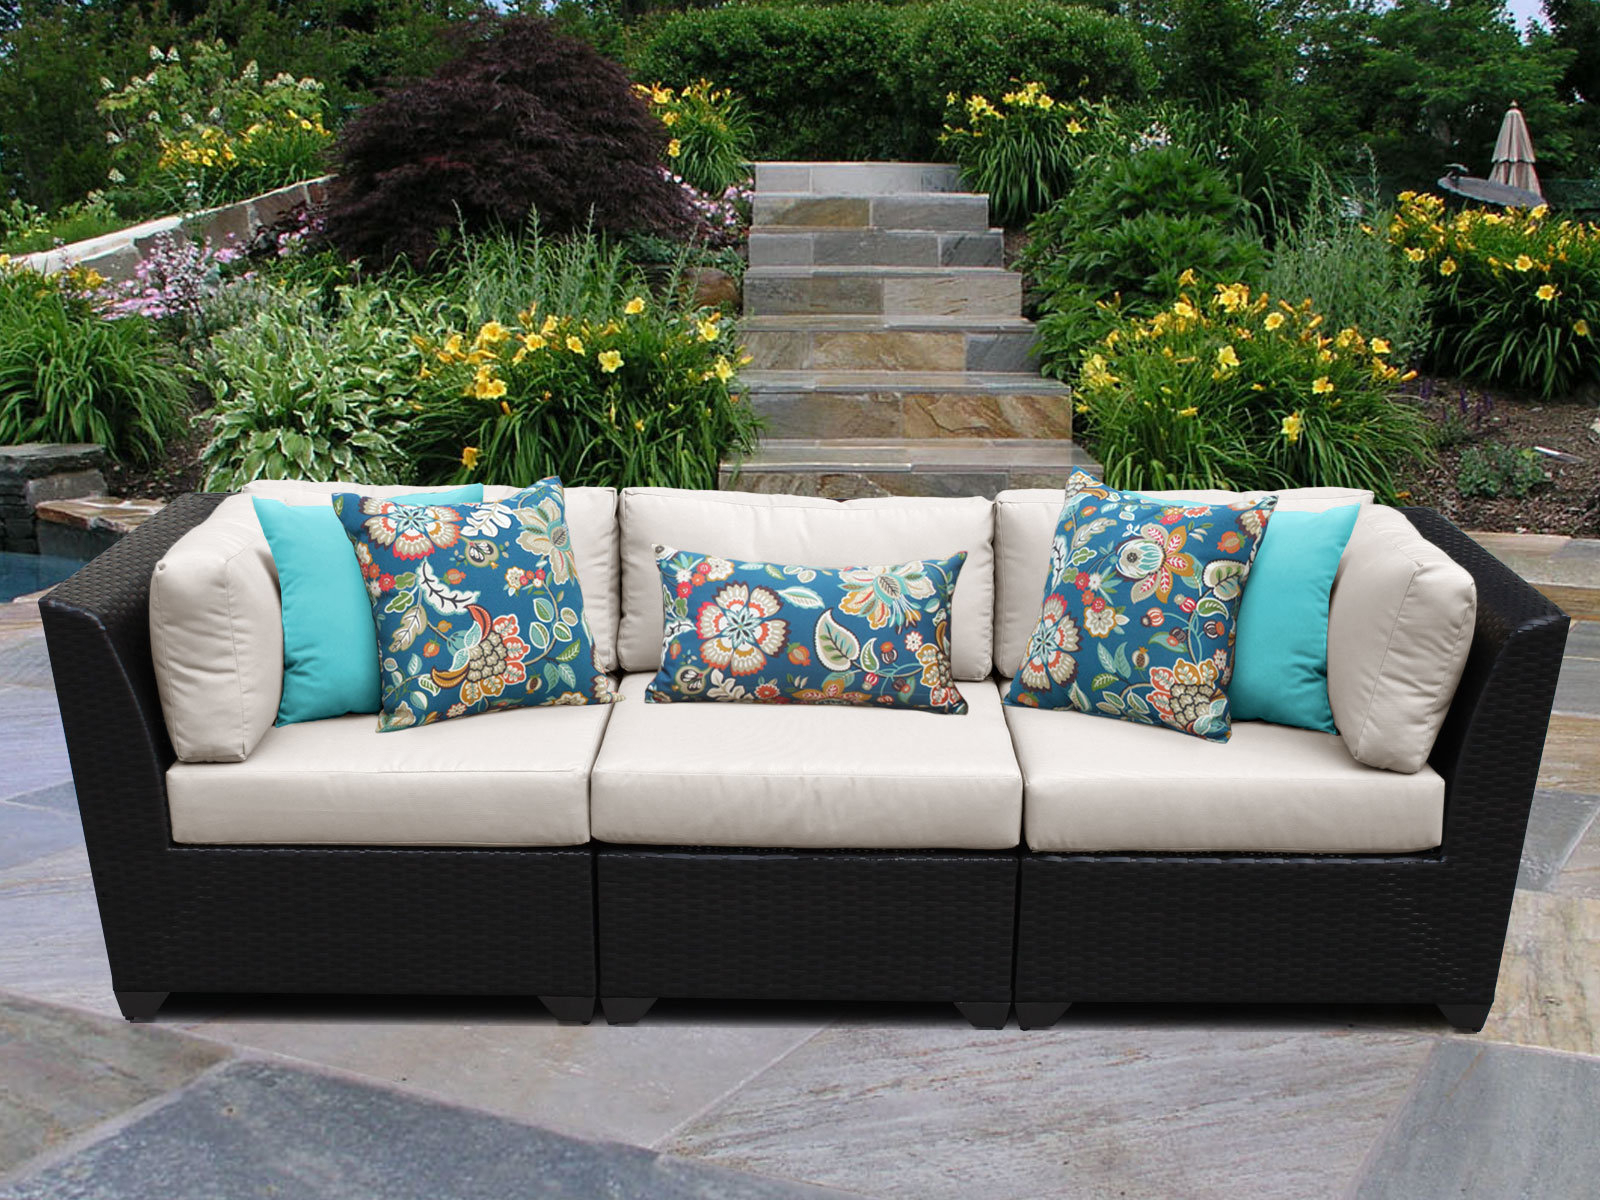 Lorentzen Patio Sectionals With Cushions Intended For Famous Camak Patio Sofa With Cushions (View 9 of 20)